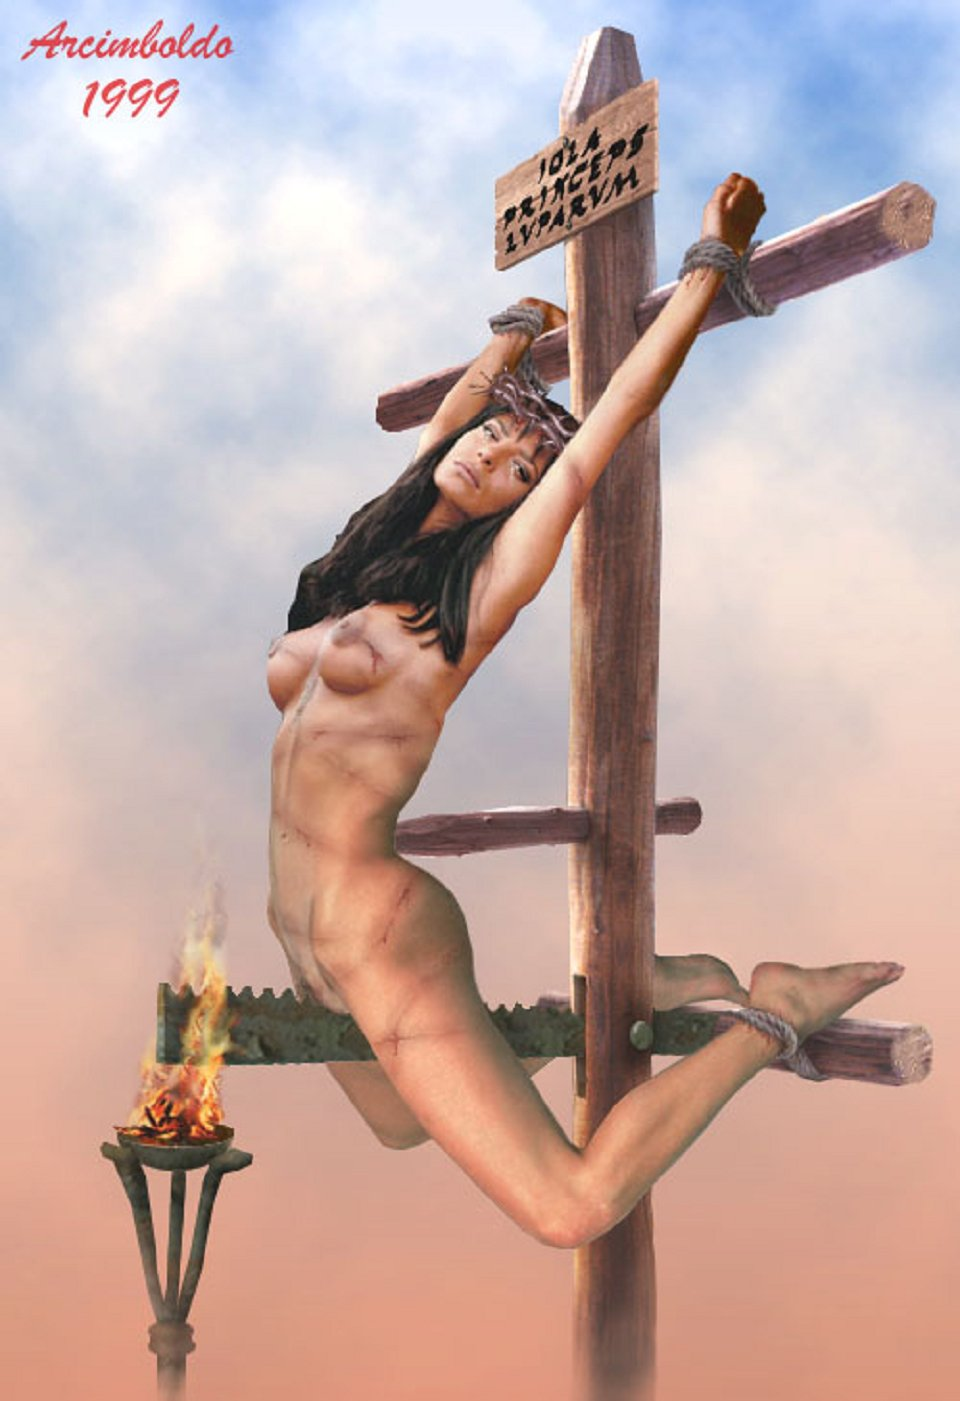 Crucified punishment orgasm bdsm artwork - free